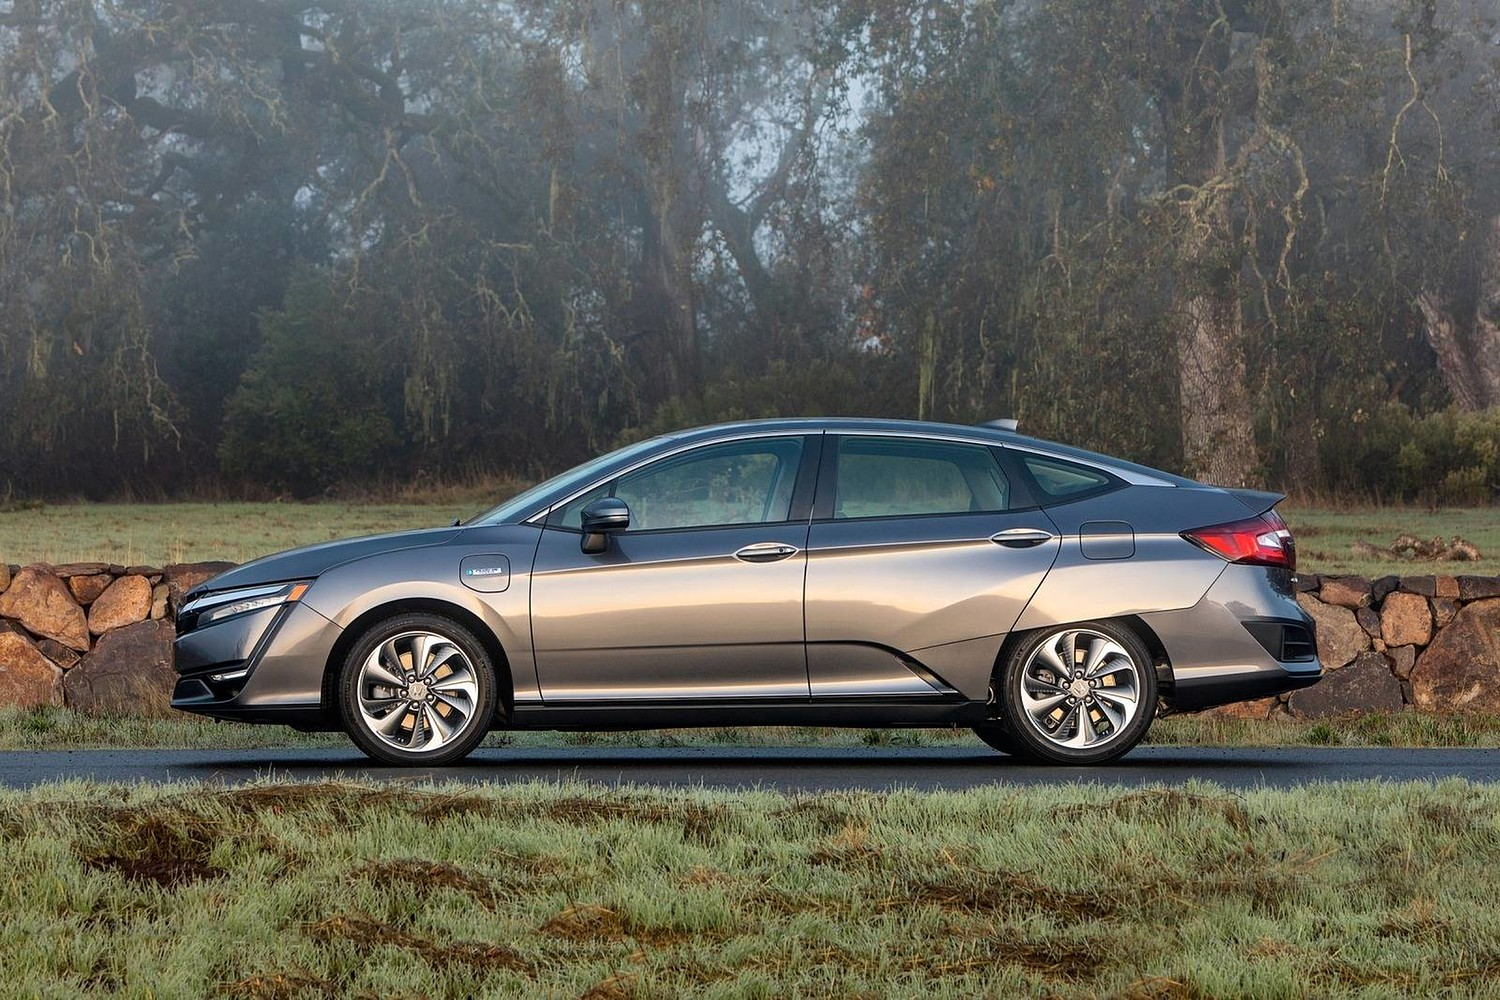 2018 Honda Clarity Touring Plug-In Hybrid Sedan Profile